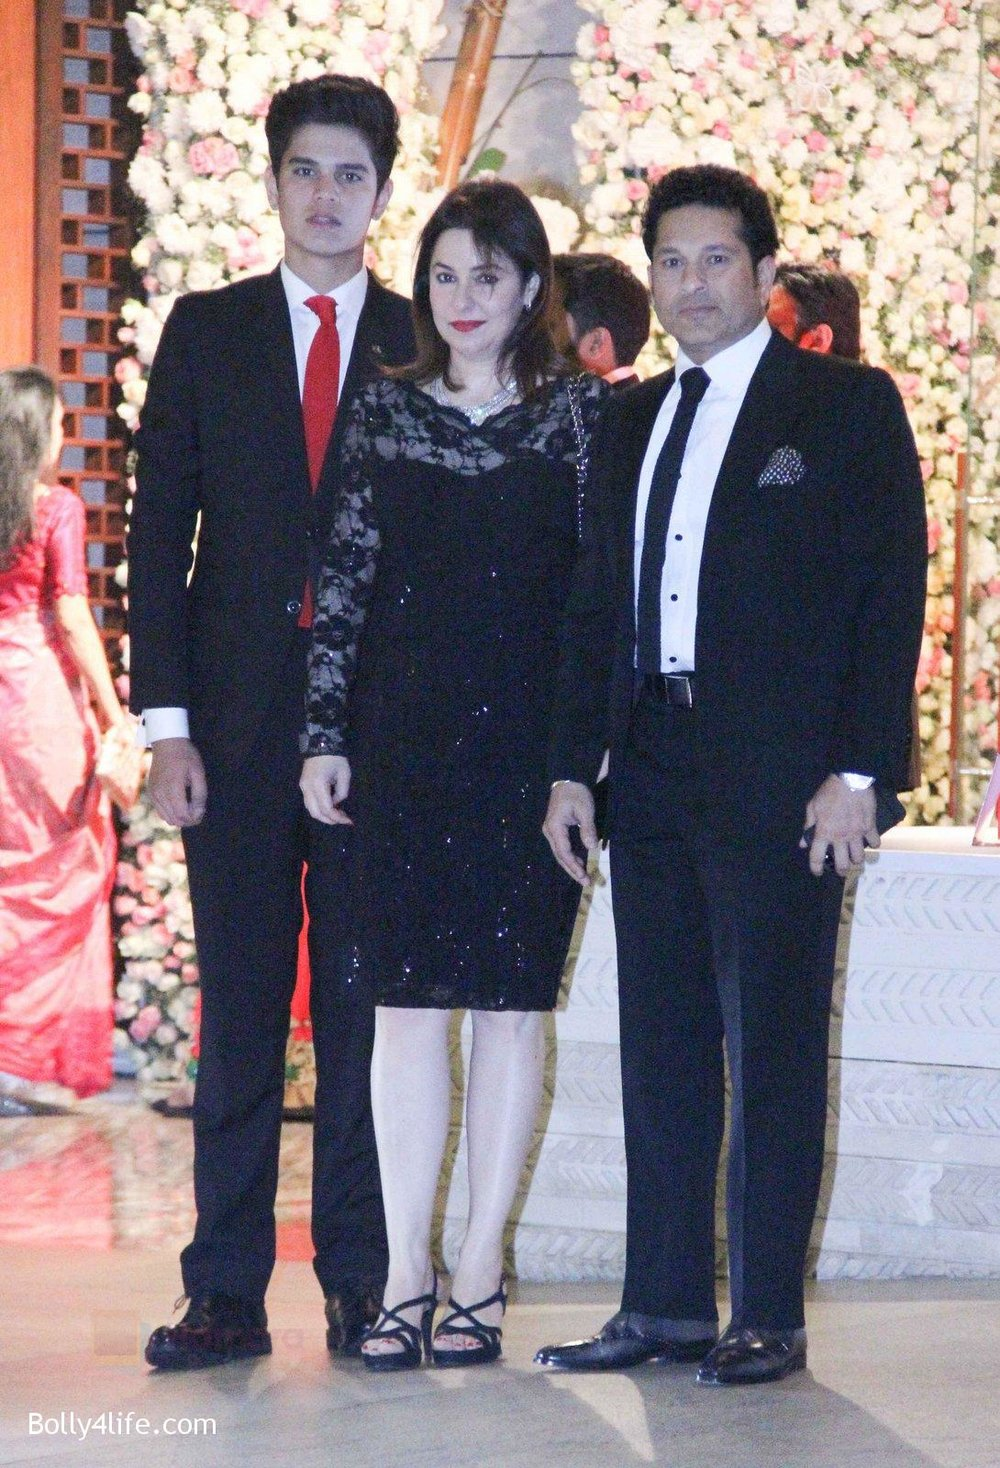 Sachin-Tendulkar-at-the-Ambanis-wedding-party-of-their-niece-Isheta-Salgaoncar-2.jpg